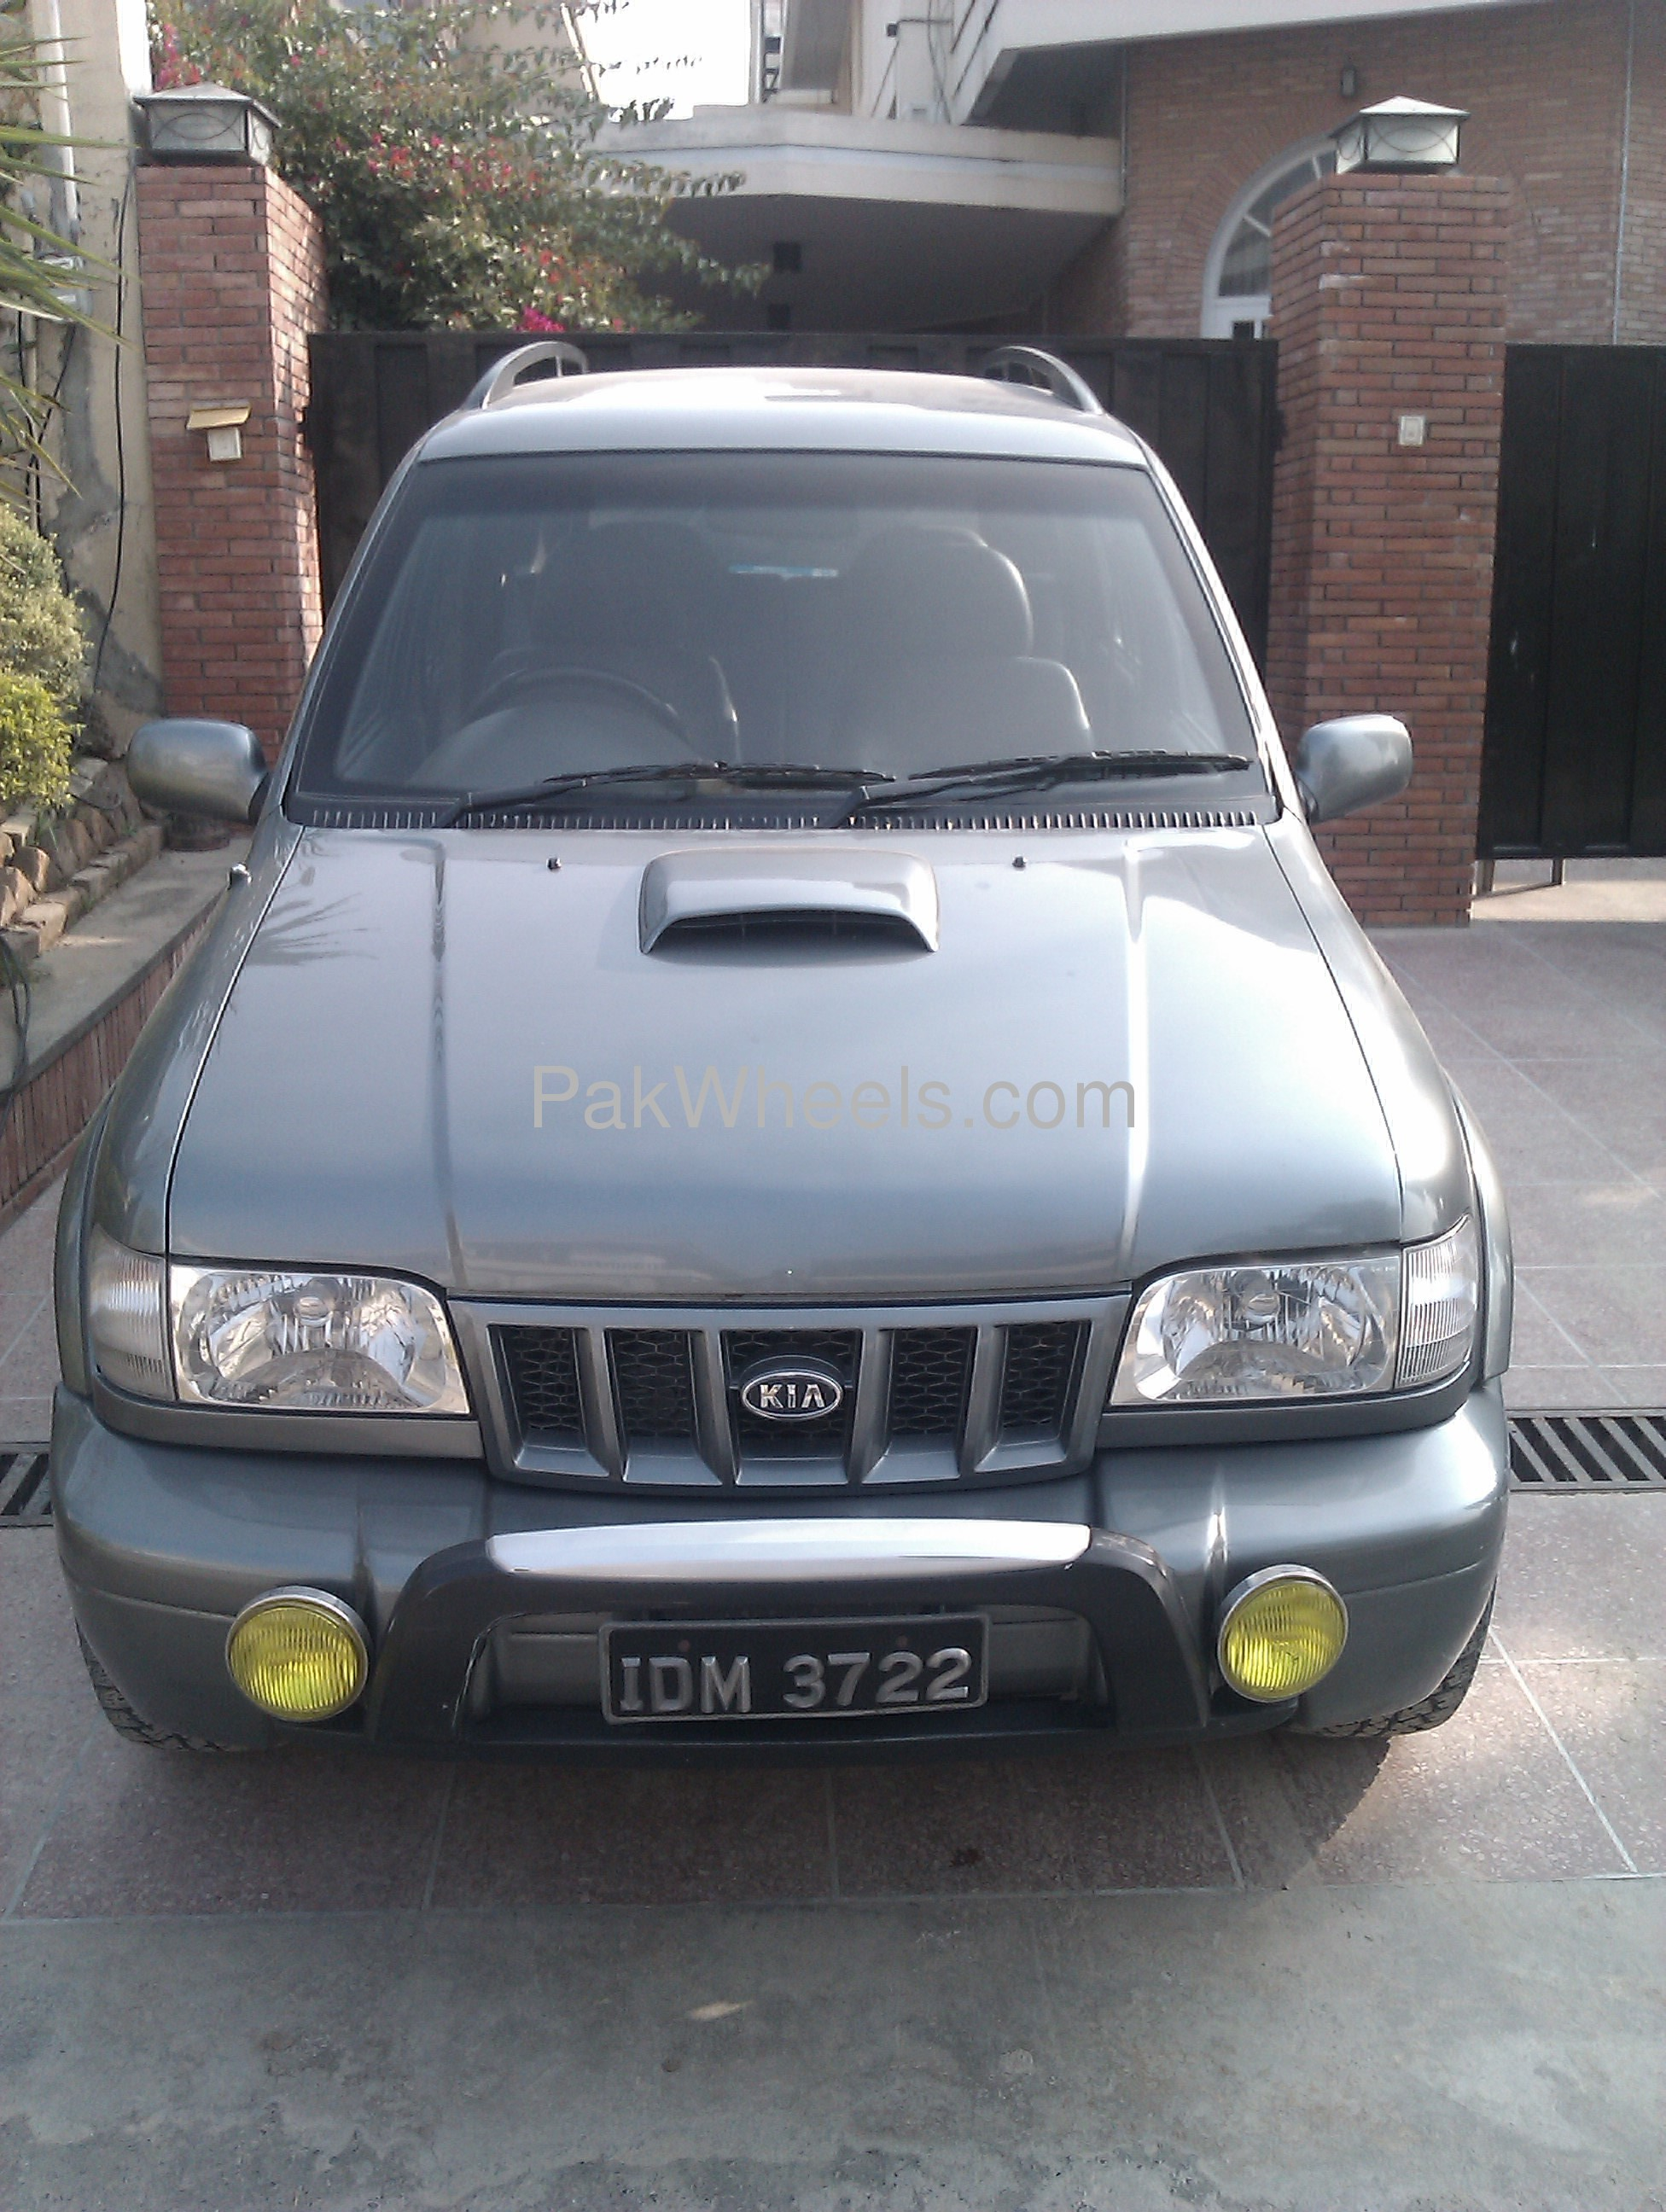 kia sportage 2 0 lx 4x4 2005 for sale in islamabad pakwheels. Black Bedroom Furniture Sets. Home Design Ideas